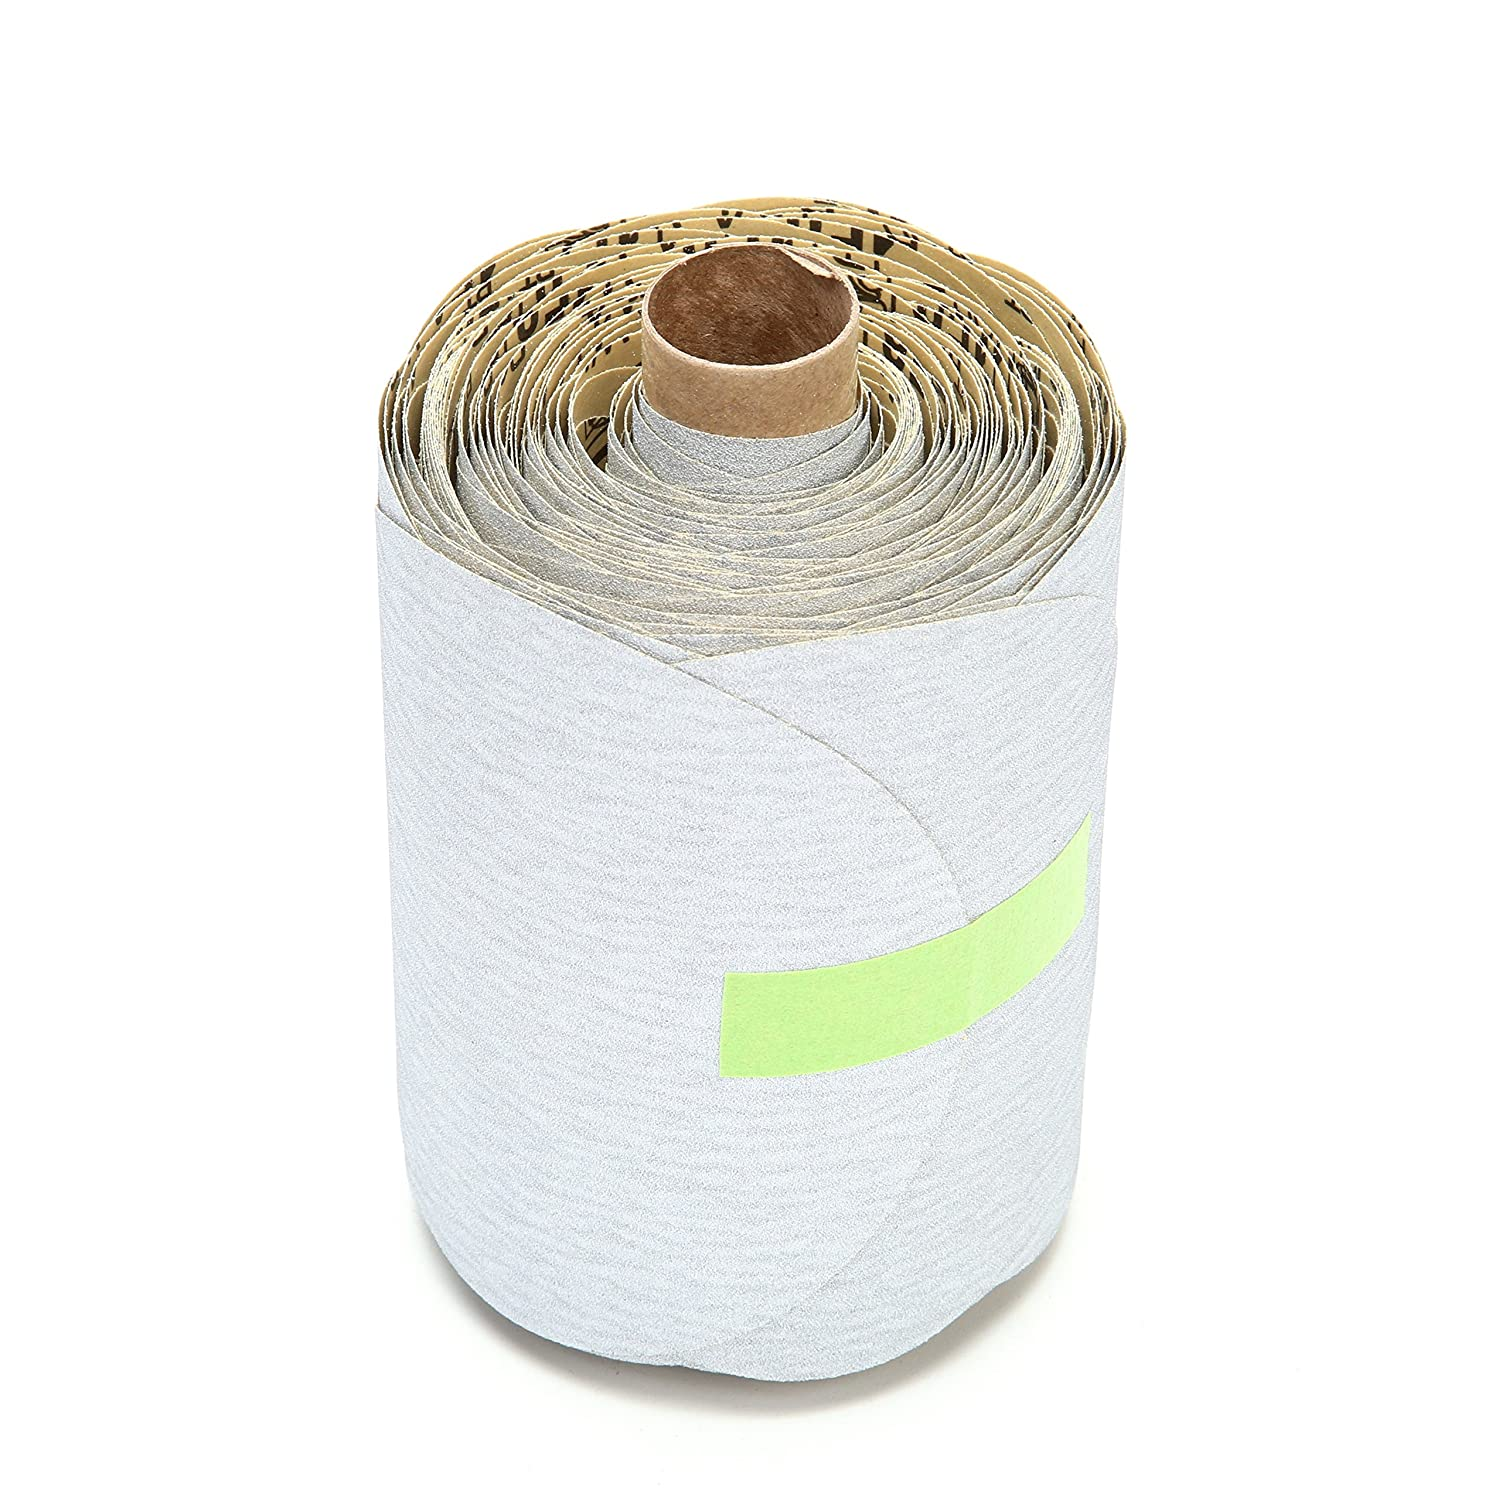 Silicon Carbide 3M Stikit Paper Disc Roll 426U Gray 5 Diameter 150 Grit Roll of 175